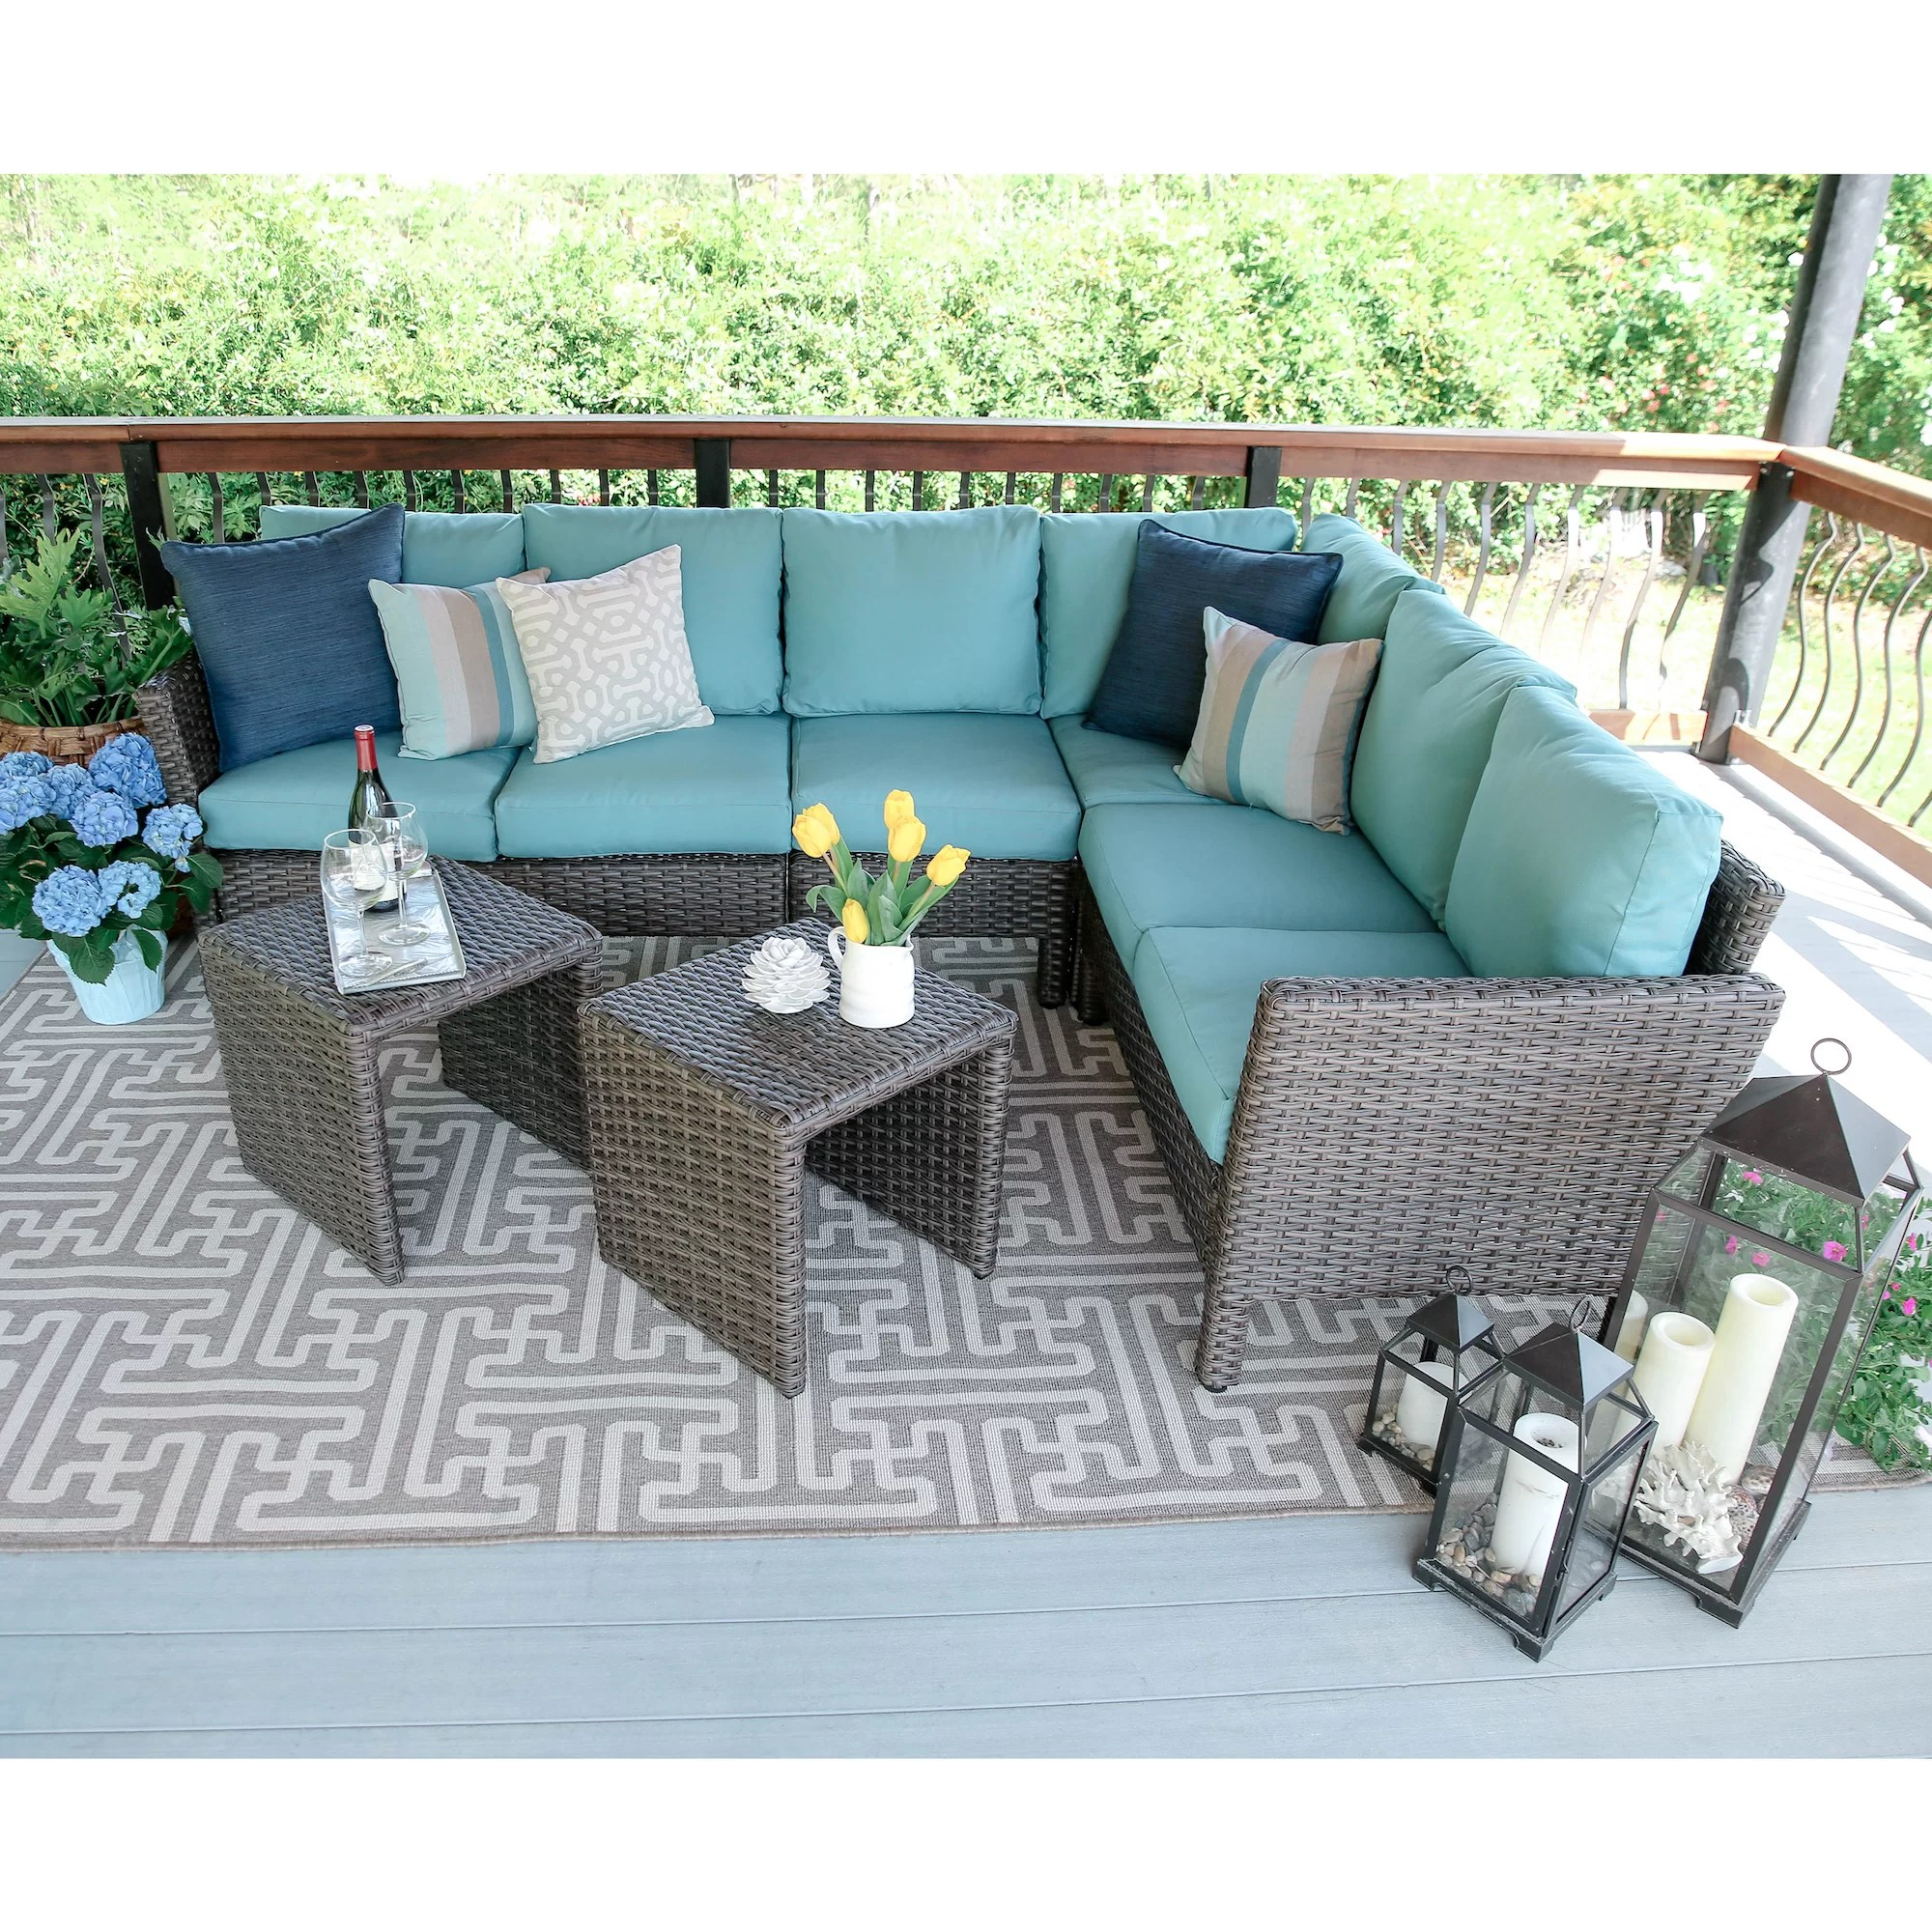 Baptist 6 Piece Rattan Sofa Set With Cushions Three Posts Daventry 6 Piece Sectional Set With Cushions